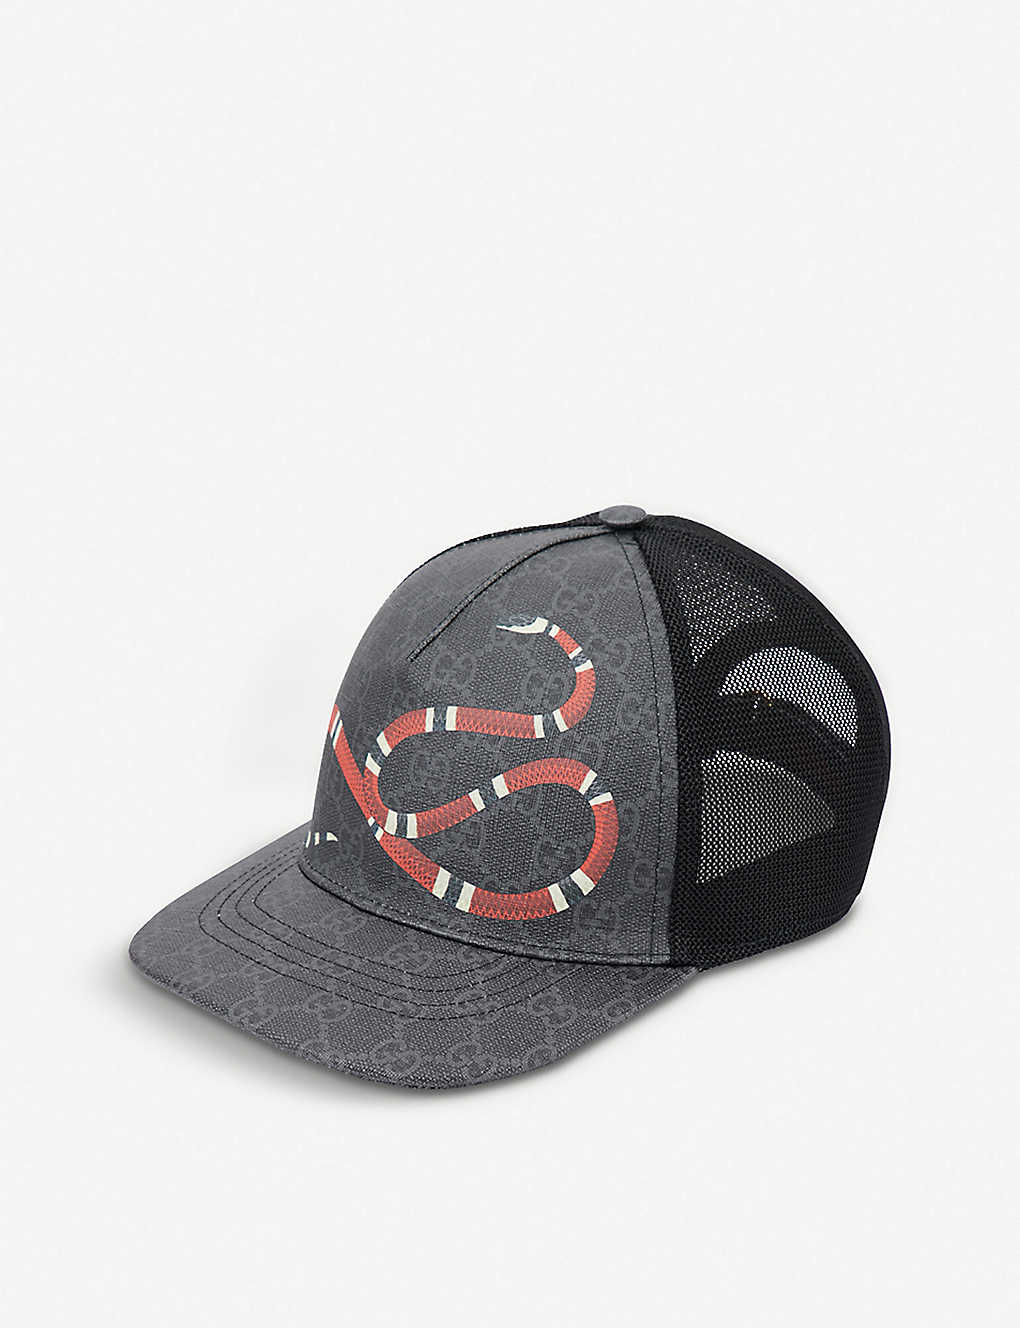 8376483f3e26d GUCCI - Kingsnake GG Supreme canvas and mesh baseball cap ...